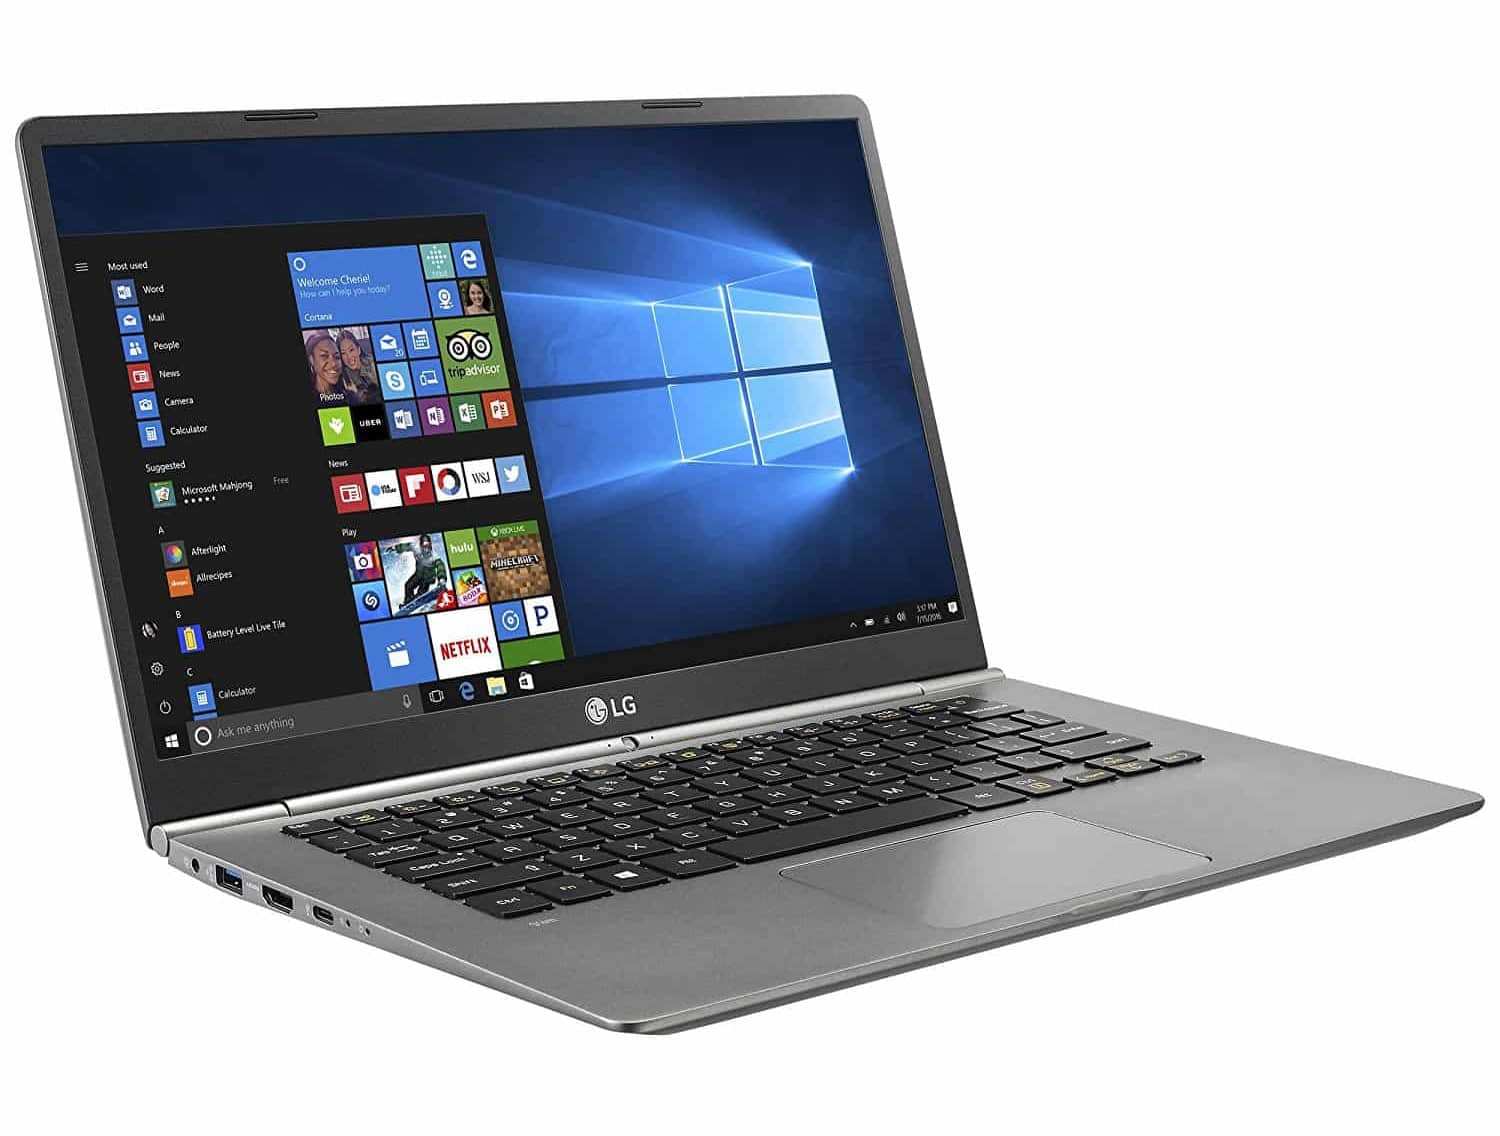 LG Gram 14 - 14 inch laptop with SSD